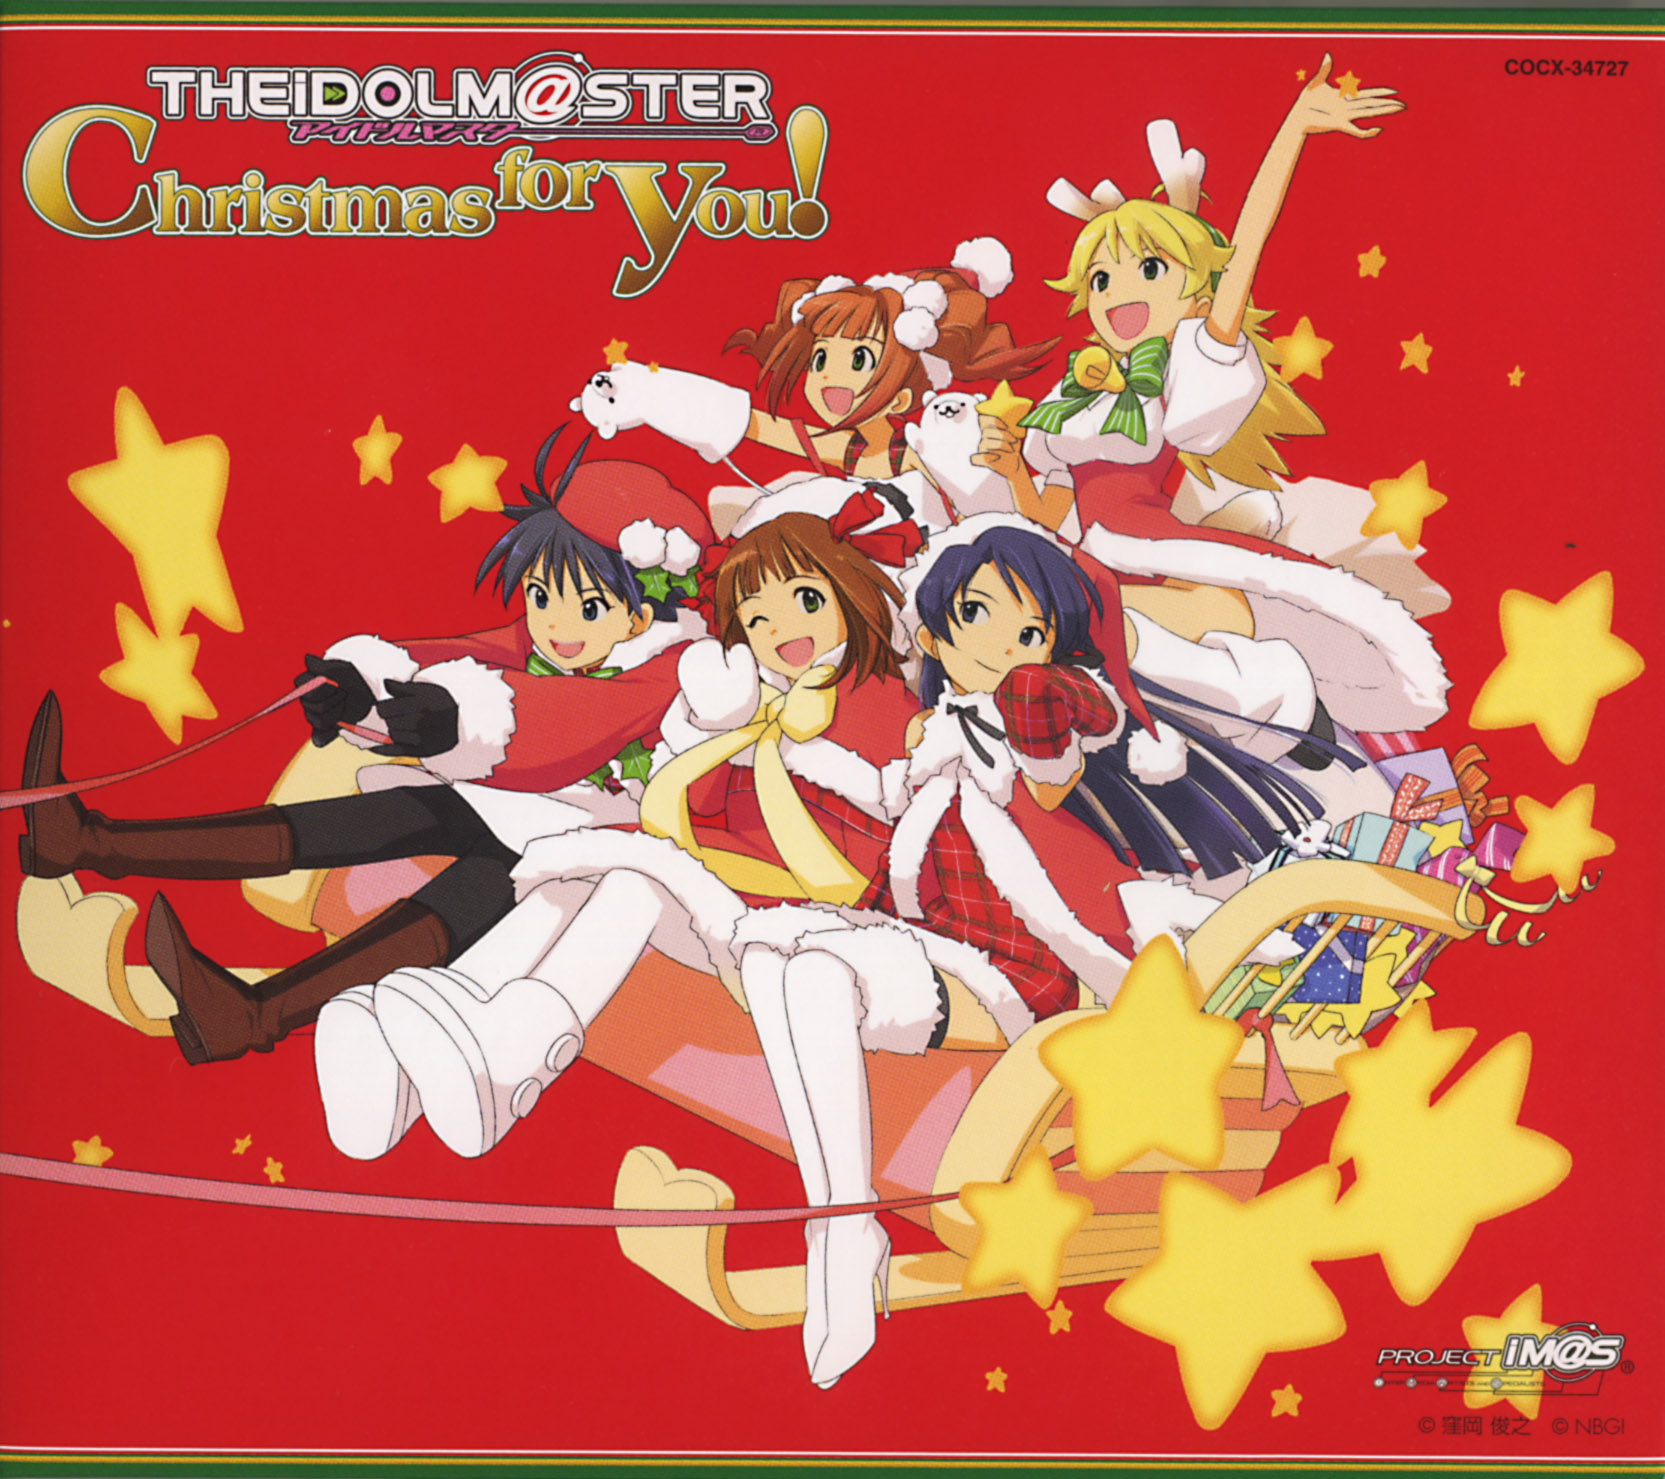 THEiDOLM@STER: Christmas for You!